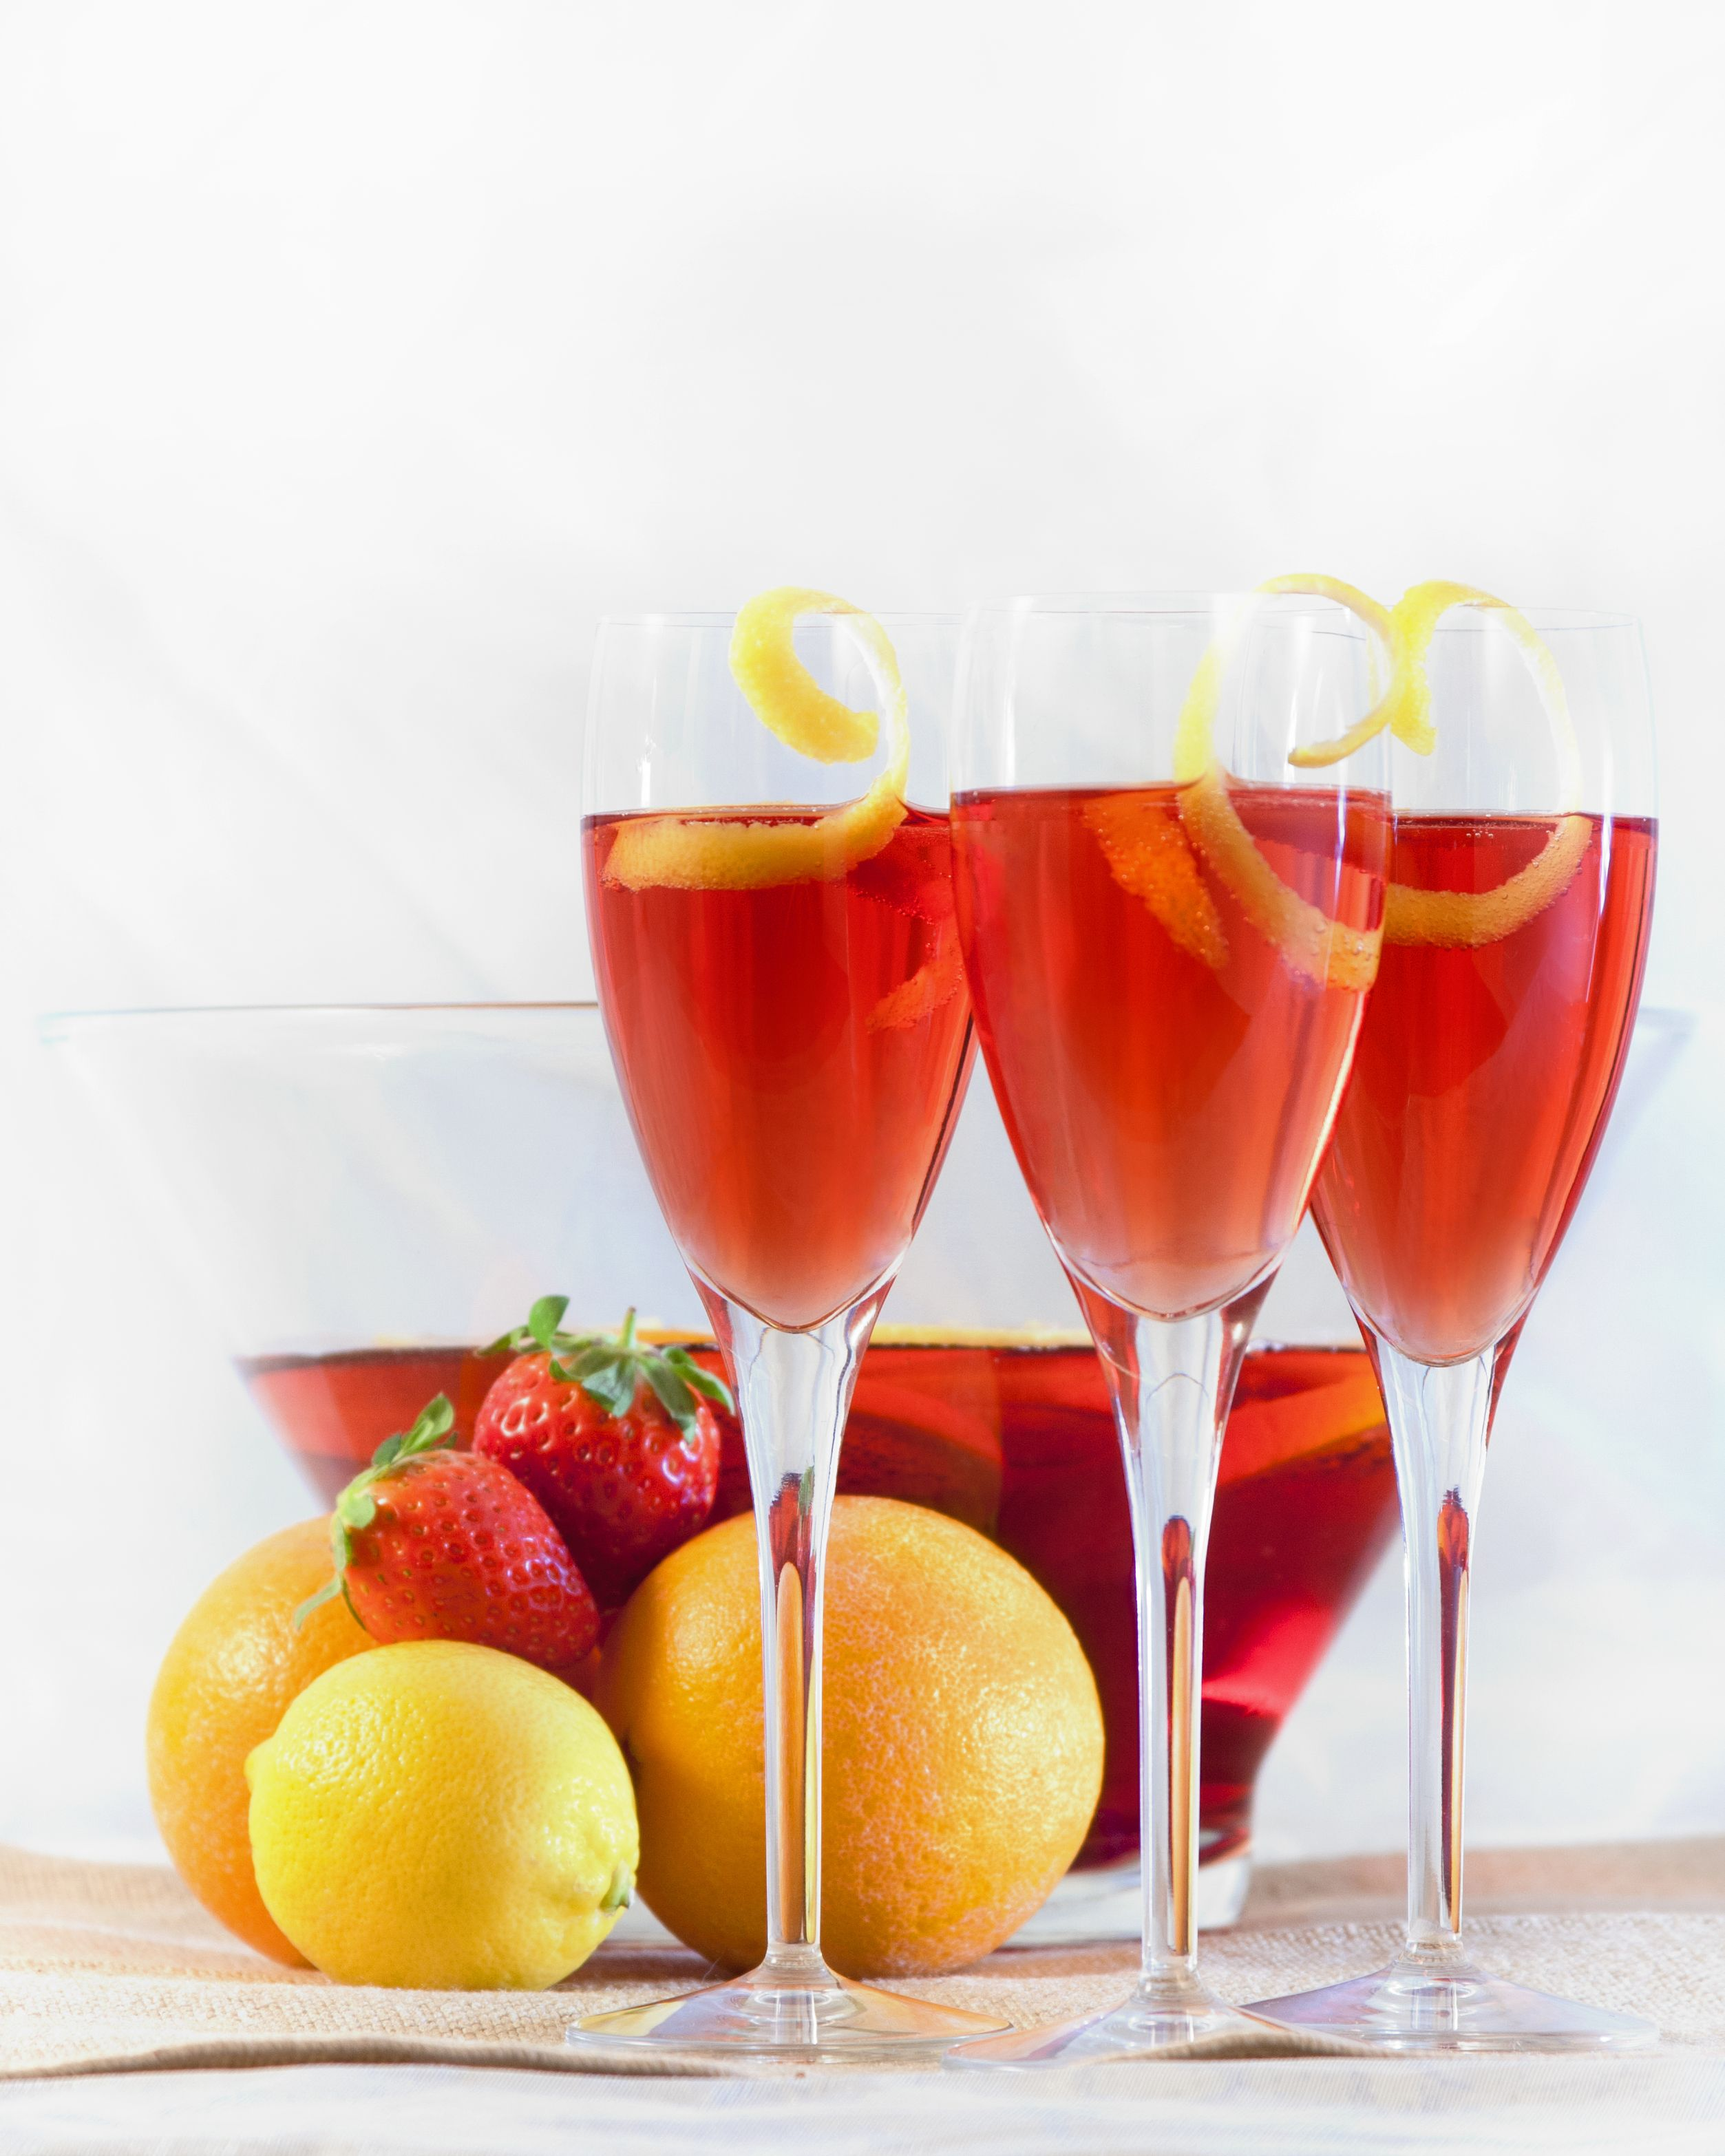 Add A Little St Germain To Your Champagne Punch And Celebrate In Style At Your Next Party Champagne Punch Recipes Champagne Punch Punch Recipes